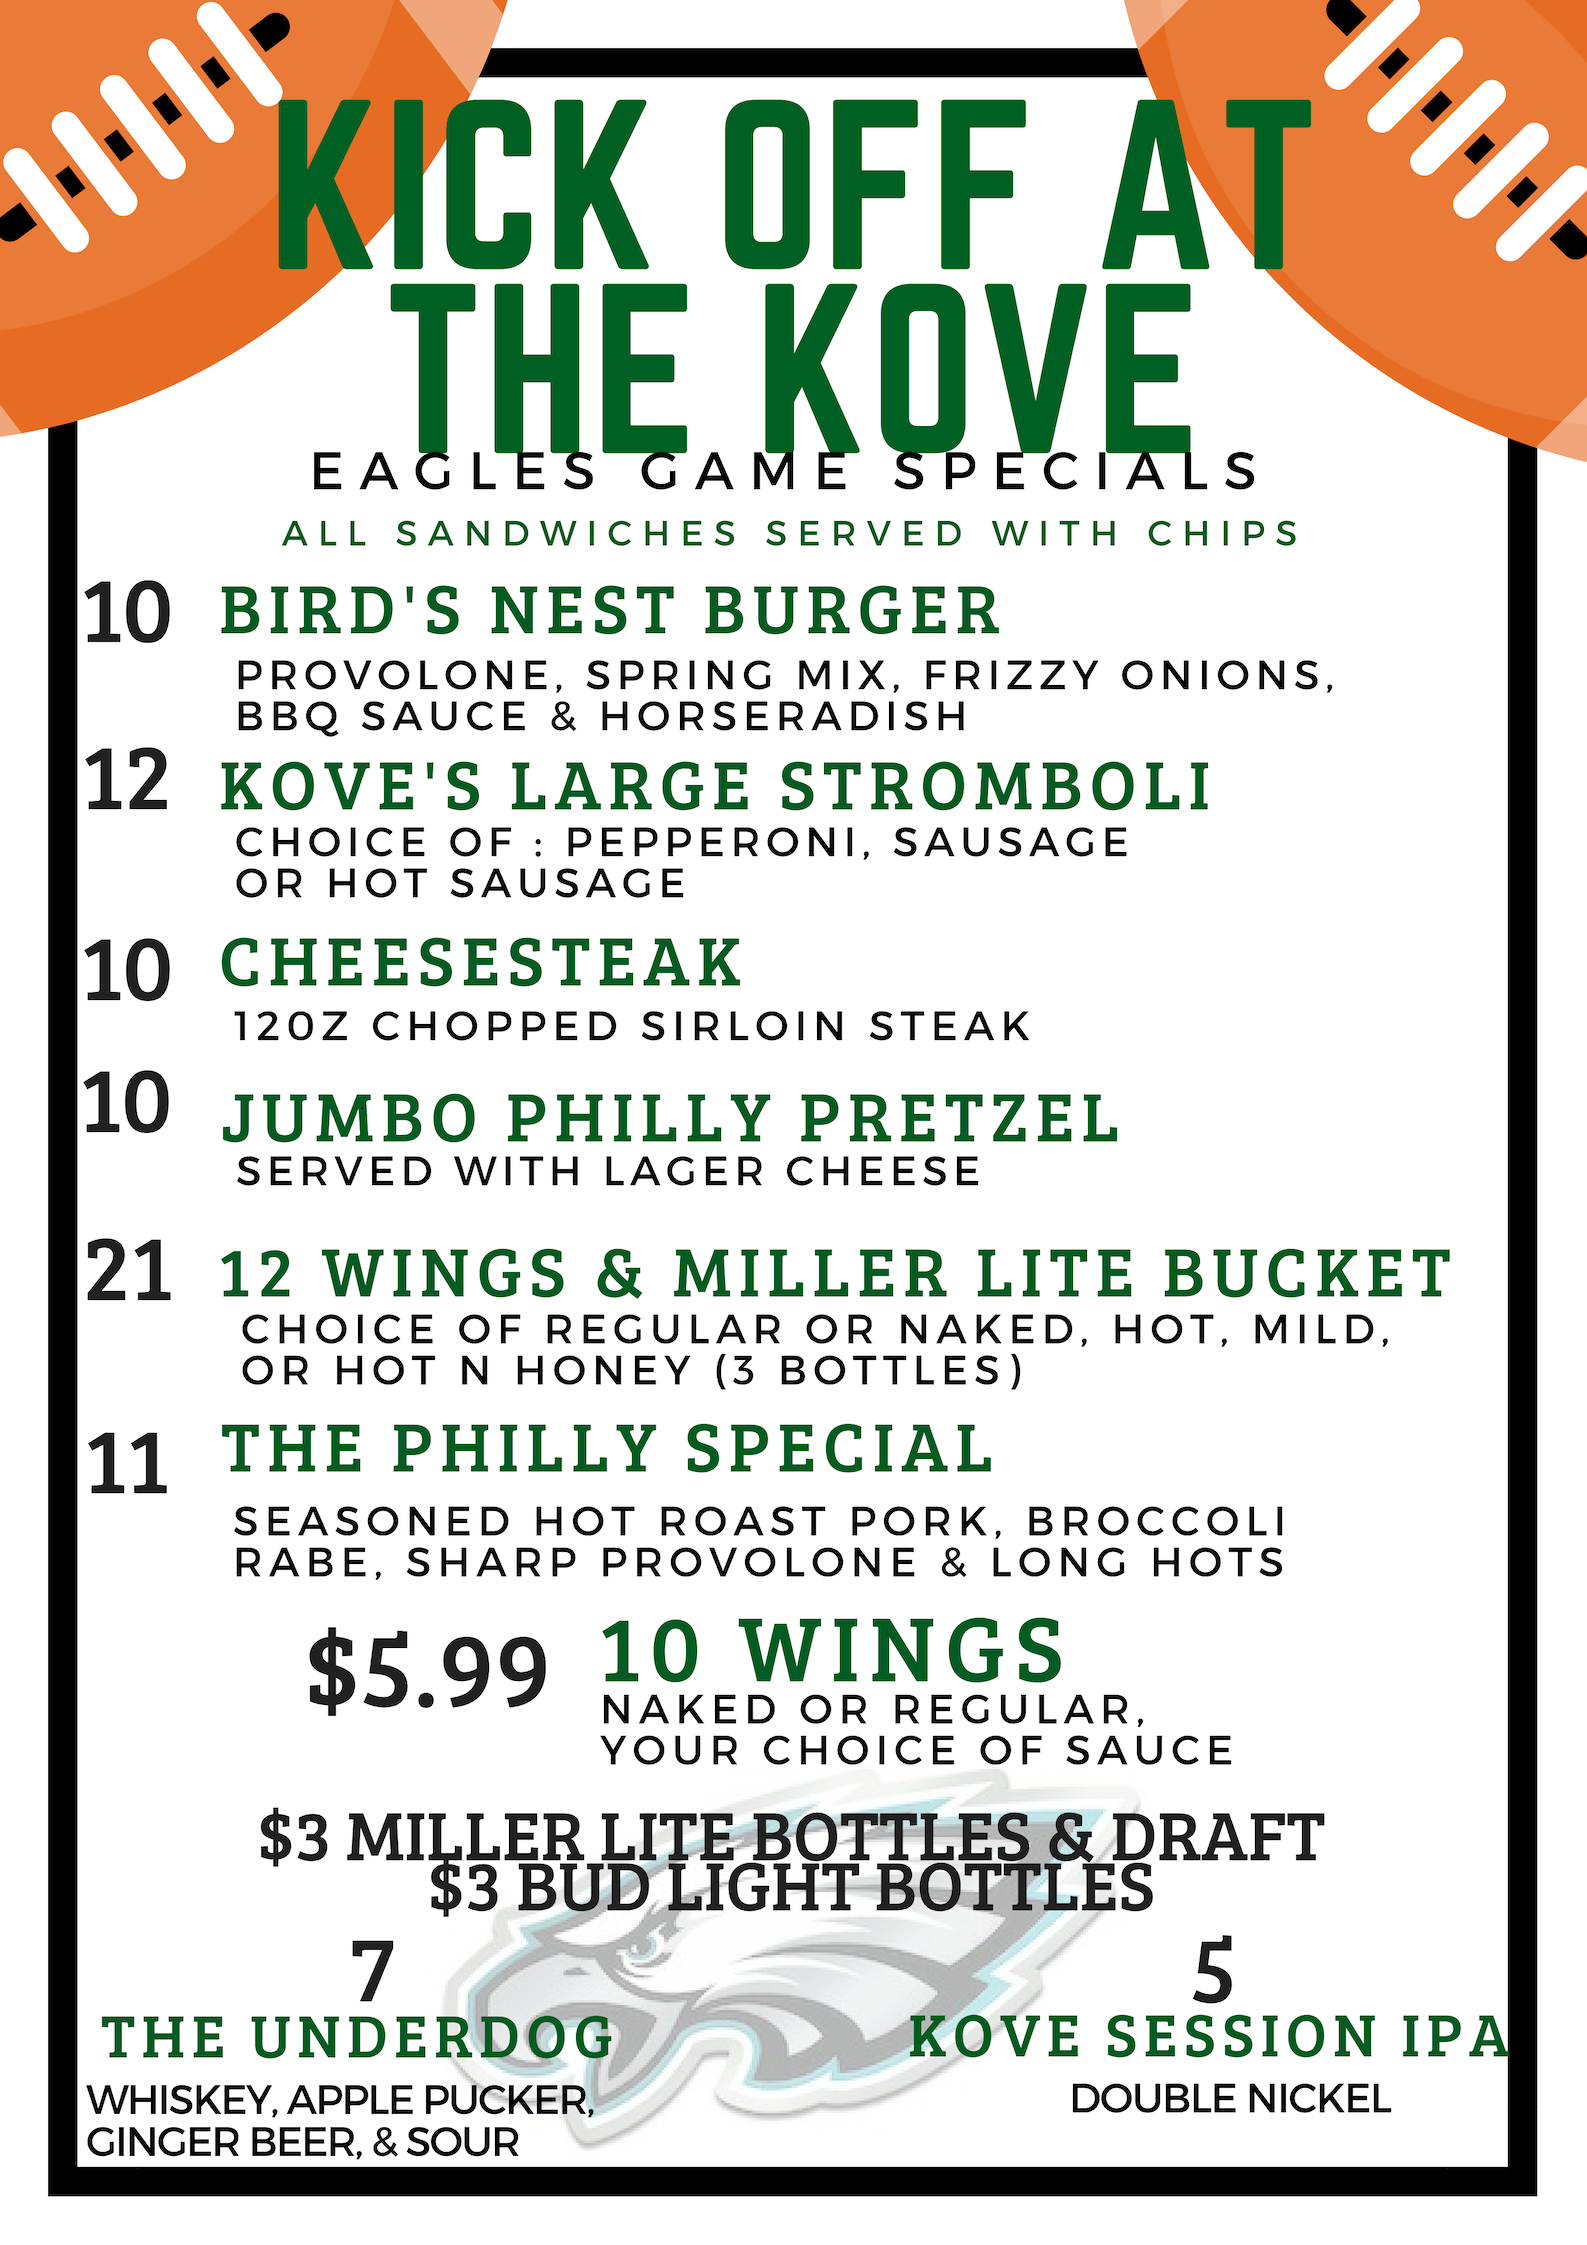 Kick off at the kove - eagles football specials. $3 miller lite bottles & draft. $3 bud light bottles. $10 bird's nest burger. $12 kove's large stromboli: choice of pepperoni, sausage, or hot sausage. $10 cheesesteak: 12 ounce chopped sirloin steak. $10 jumbo philly pretzel: served with lager cheese. $21 12 wings & miller lite bucket: choice of regular or naked, hot, mild, or hot n honey (3 bottles). $11 the philly special: seasoned hot roast pork, broccoli rabe, sharp provolone, & long hots. all sandwiches served with homemade chips. $7 the underdog: whiskey, apple pucker, ginger beer, & sour. $5 Kove Session IPA: Double nickel